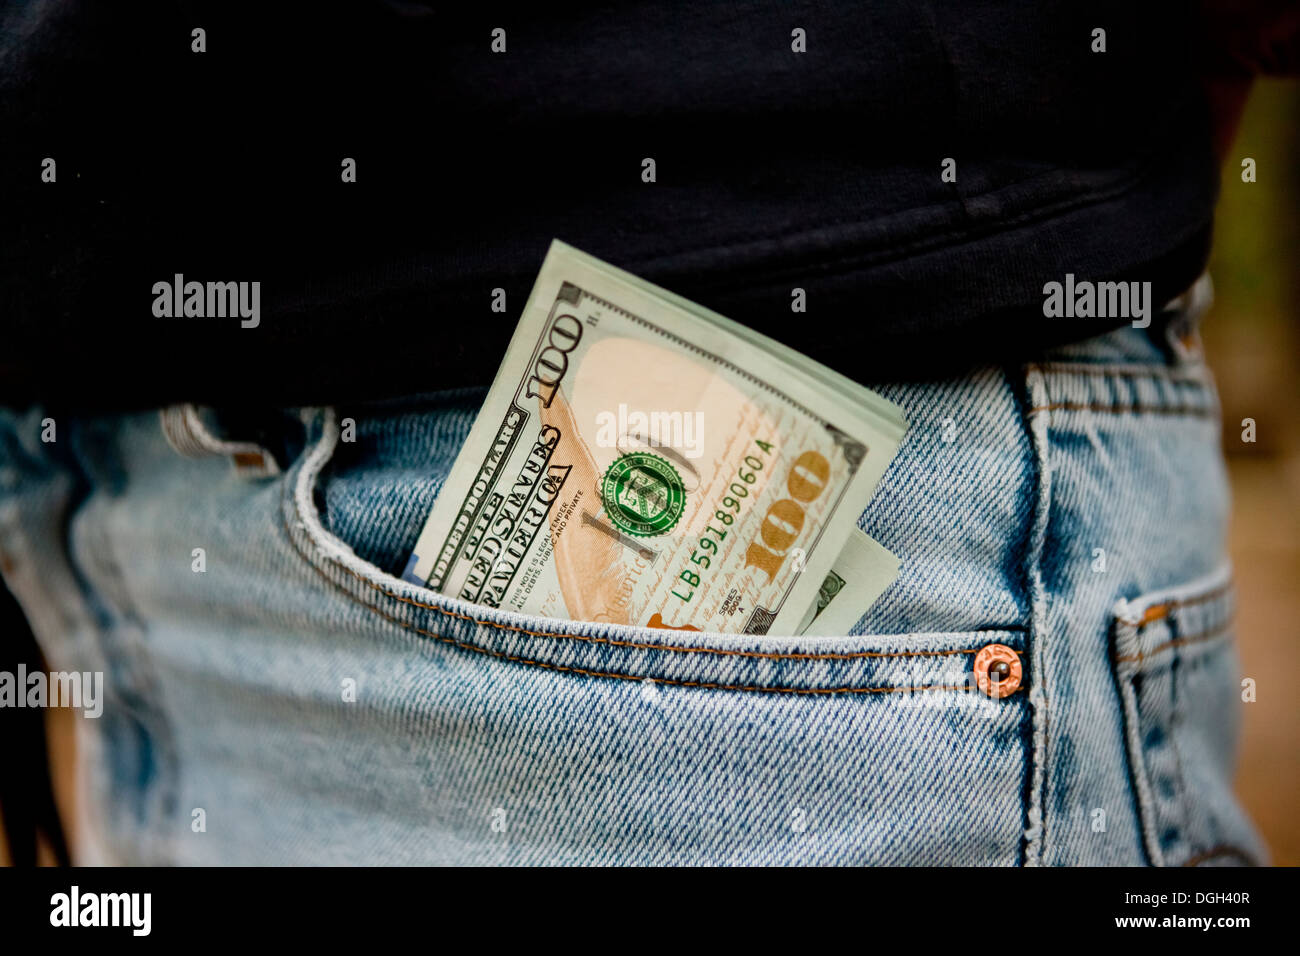 Money sticking out of pants front pocket - Stock Image